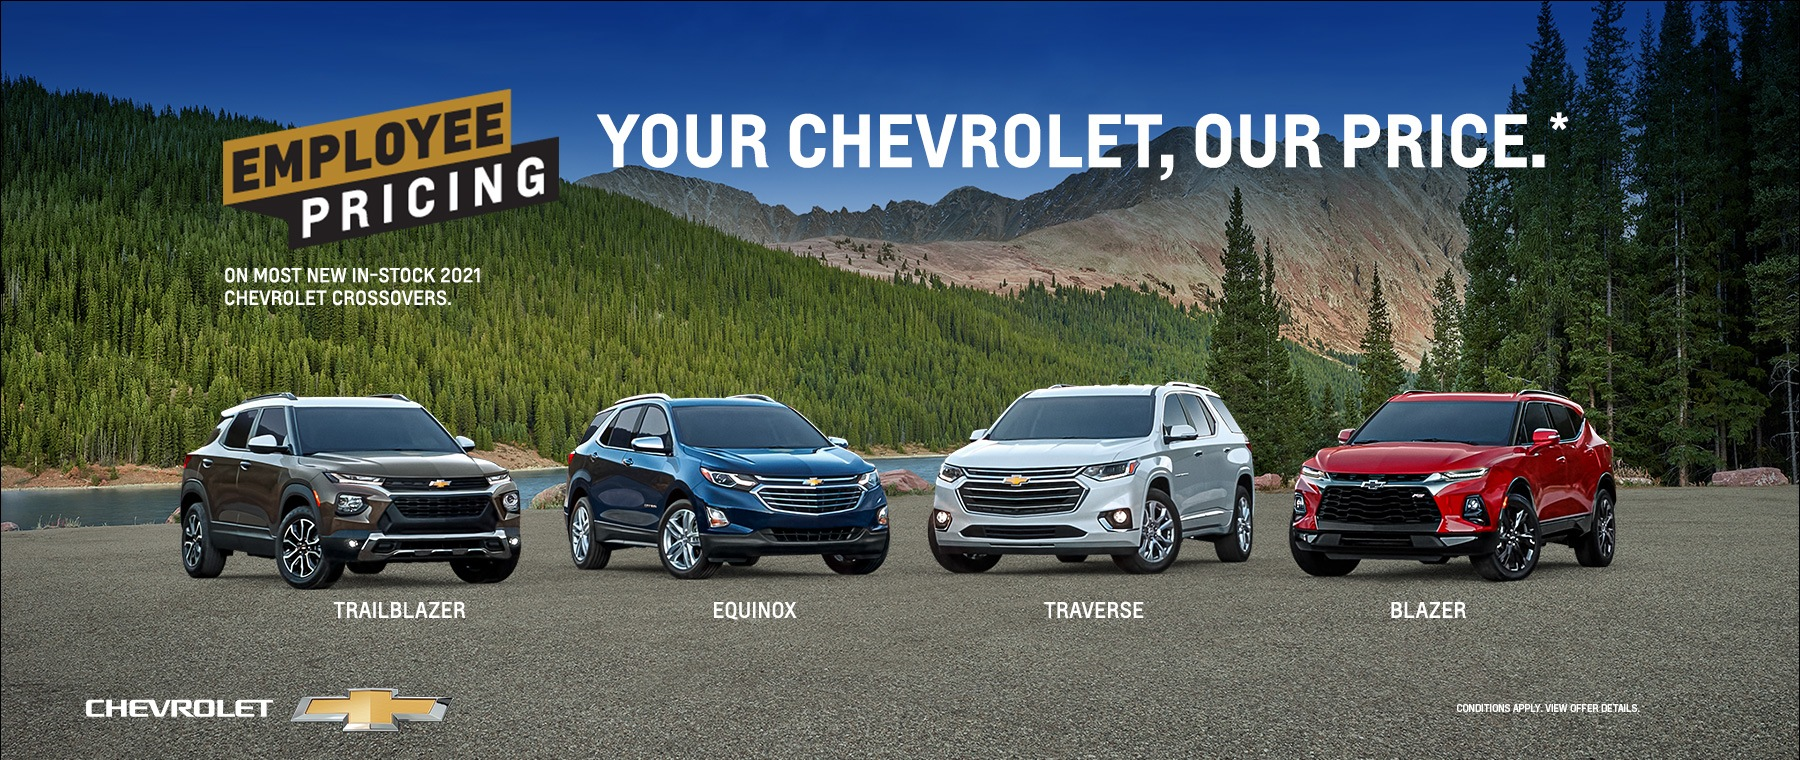 Employee Pricing – Your Chevrolet, Our Price